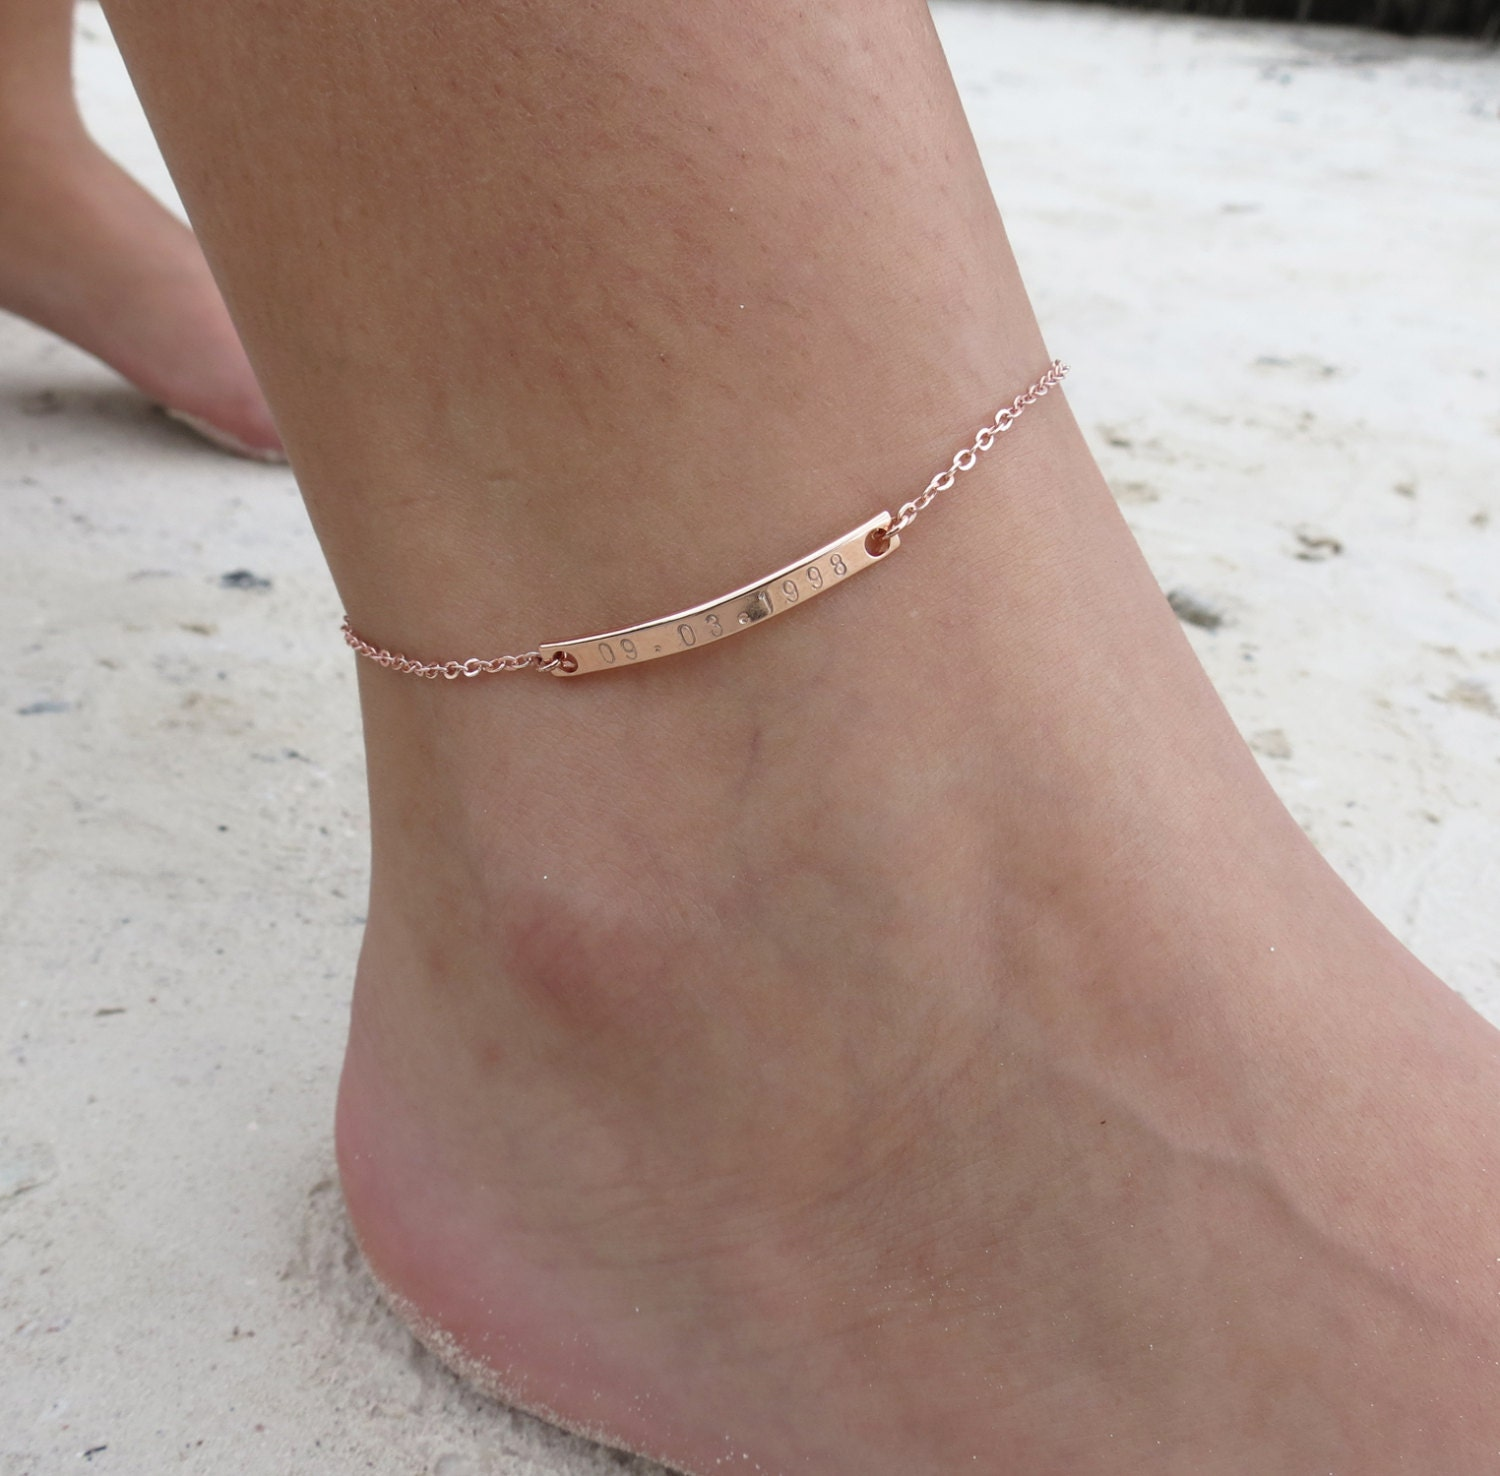 butterfly bracelets sterling gold bracelet silver yc chain marquise anklet rolo with az charms ankle bling jewelry